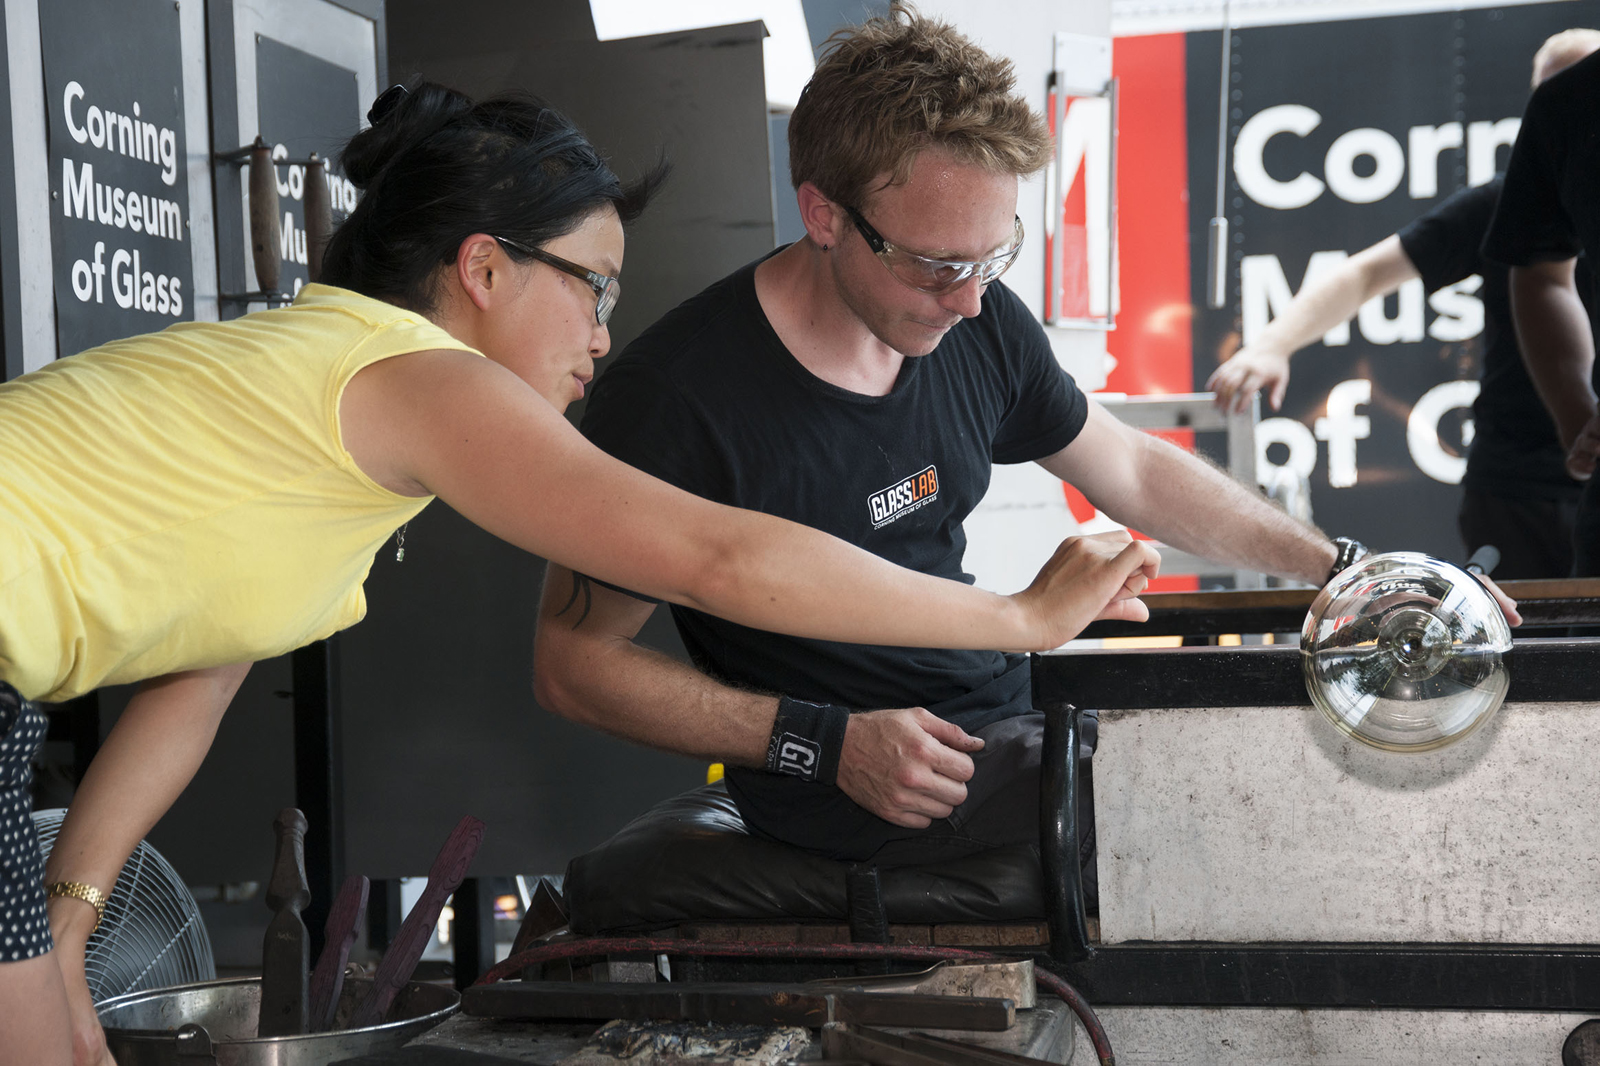 Designer Helen Lee at GlassLab on Governors Island, July 2012